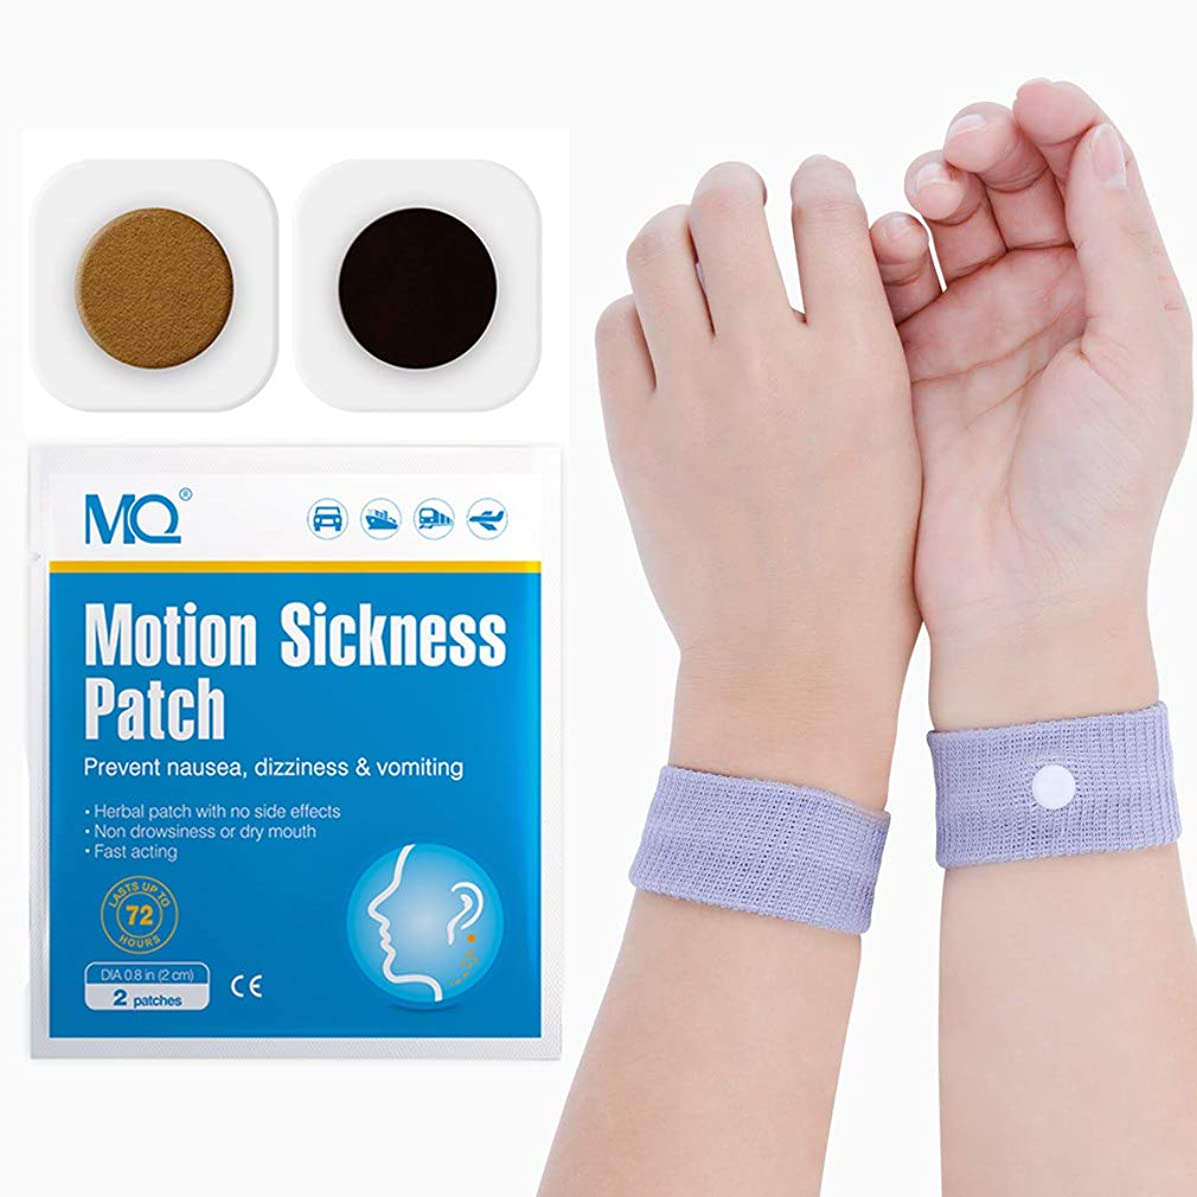 MQ 14ct Sea Sickness Patches with 1 Pair of Anti-Nausea Wristbands - Relieves Nausea, Dizziness & Vomiting from Motion Sickness, Fast Acting and No Side Effects